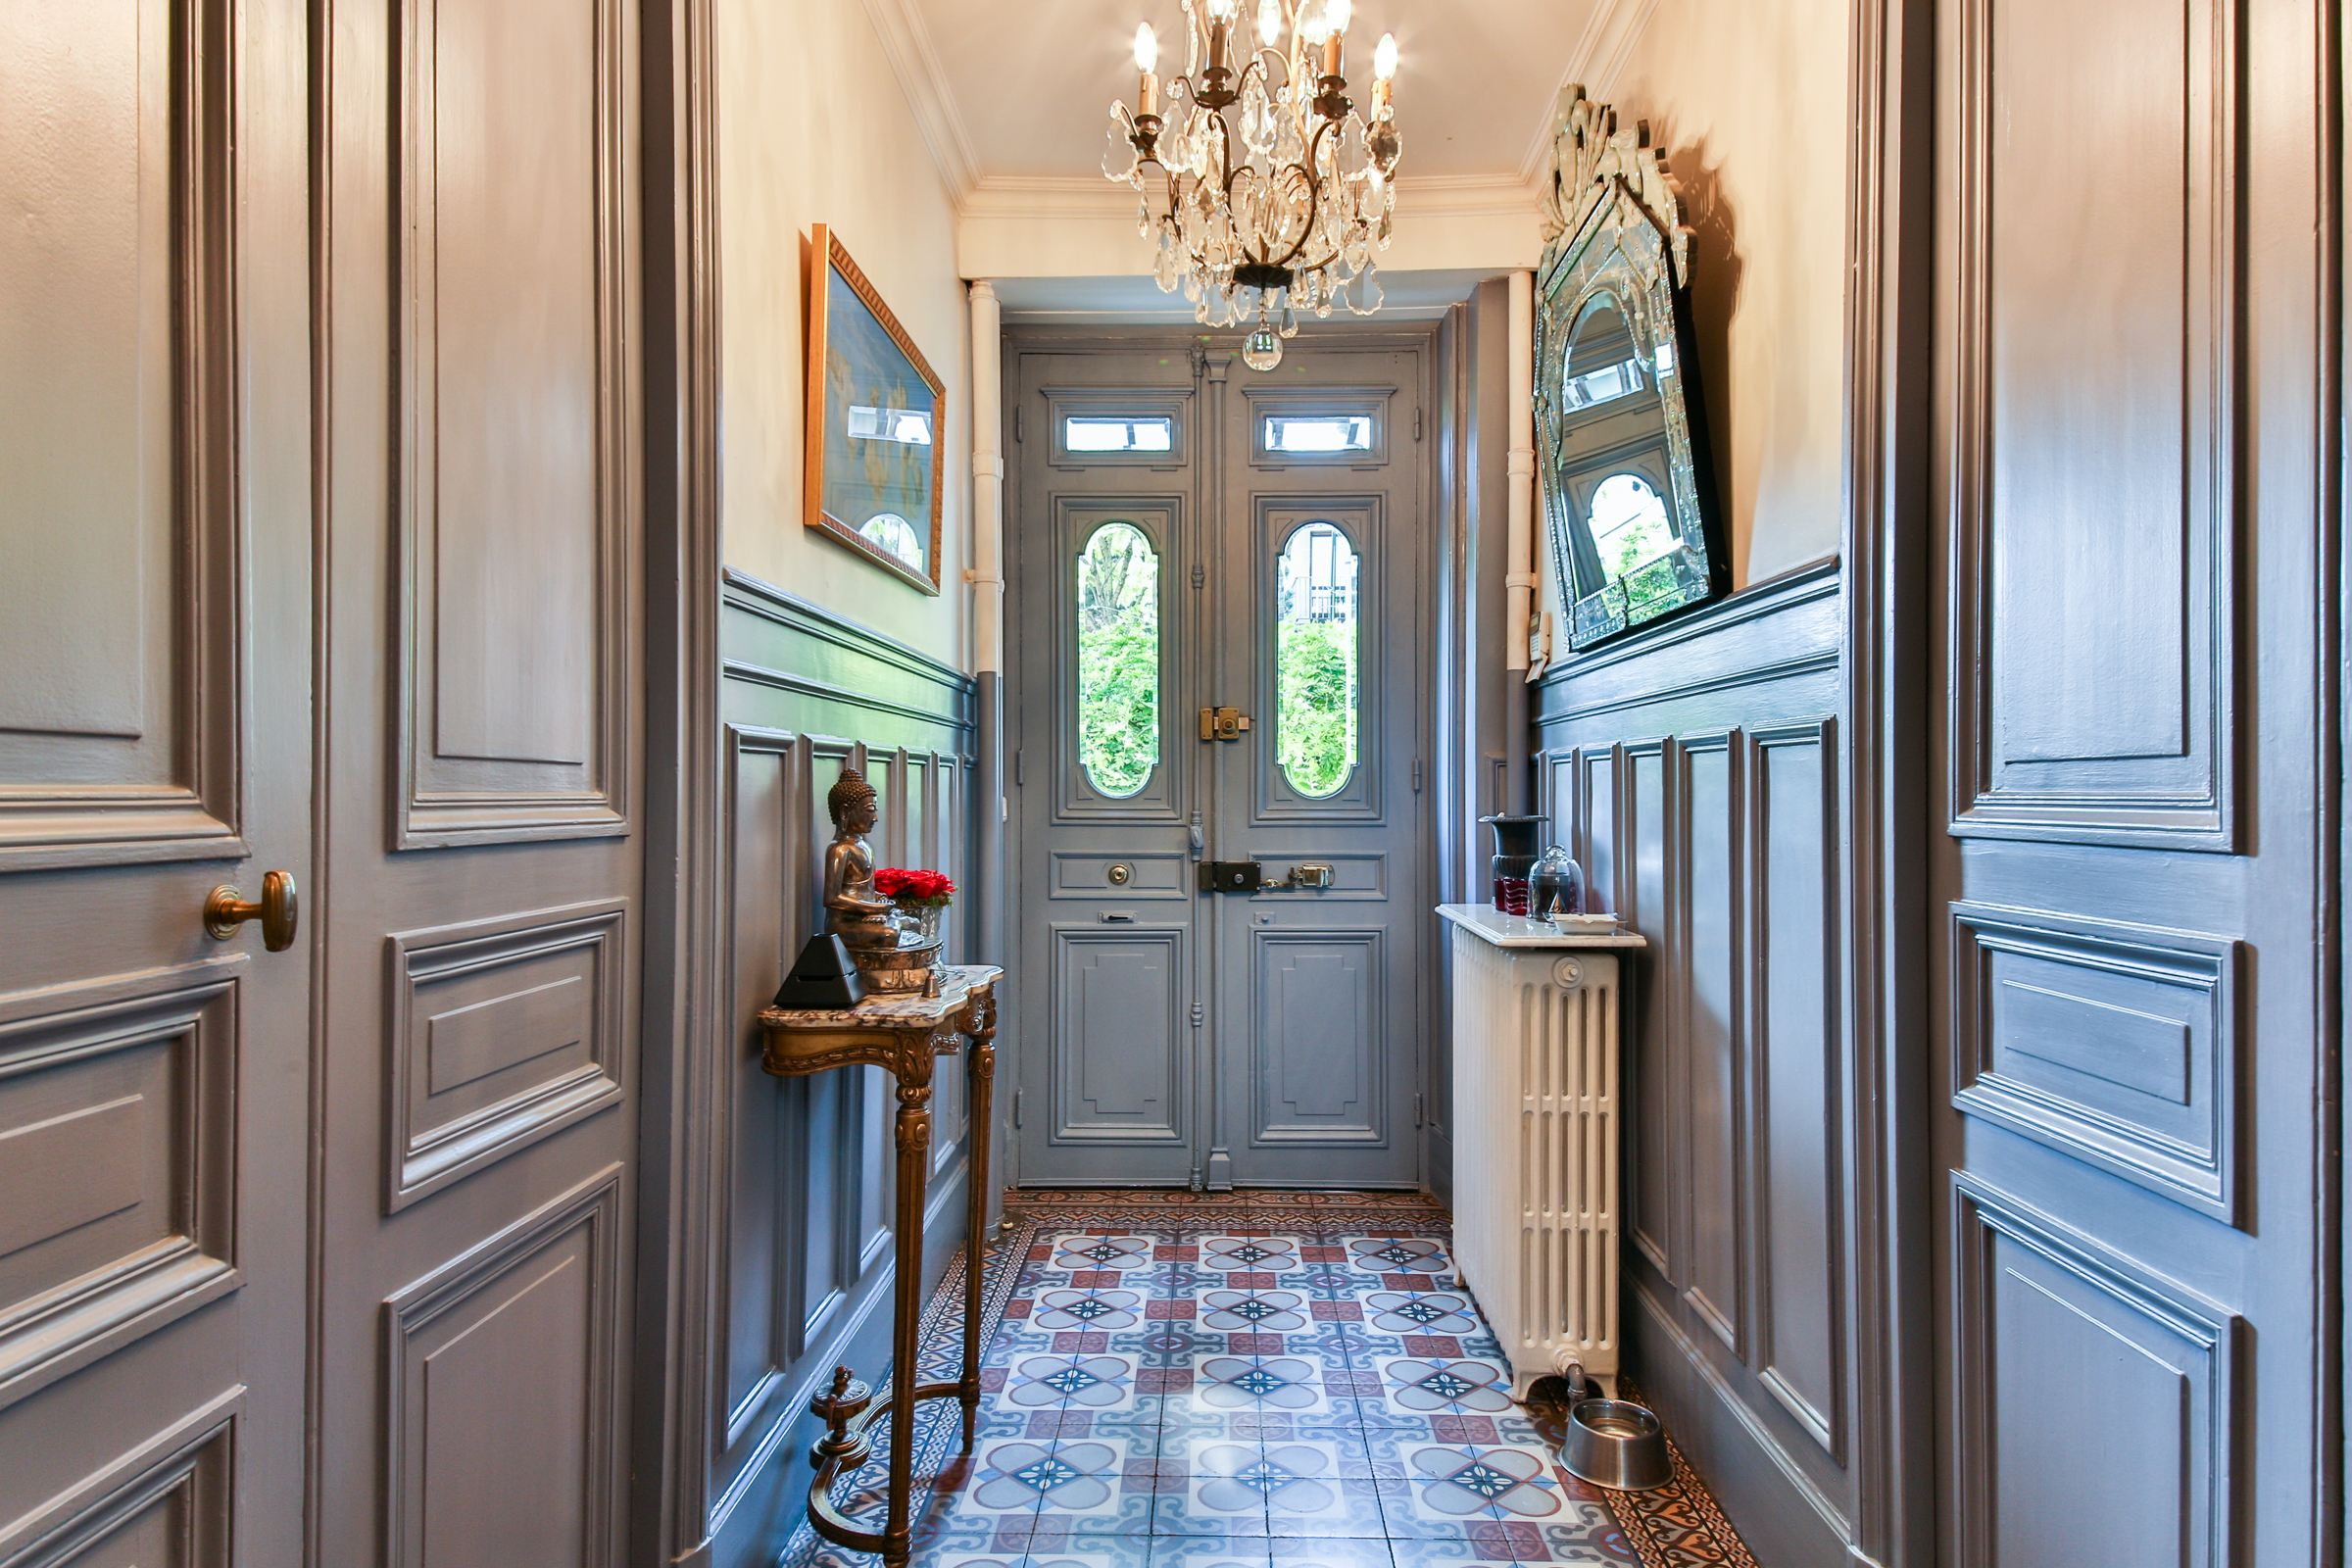 Property For Sale at Rueil Malmaison. Private Mansion of 300 sq.m and a landscaped land of 500 sq.m